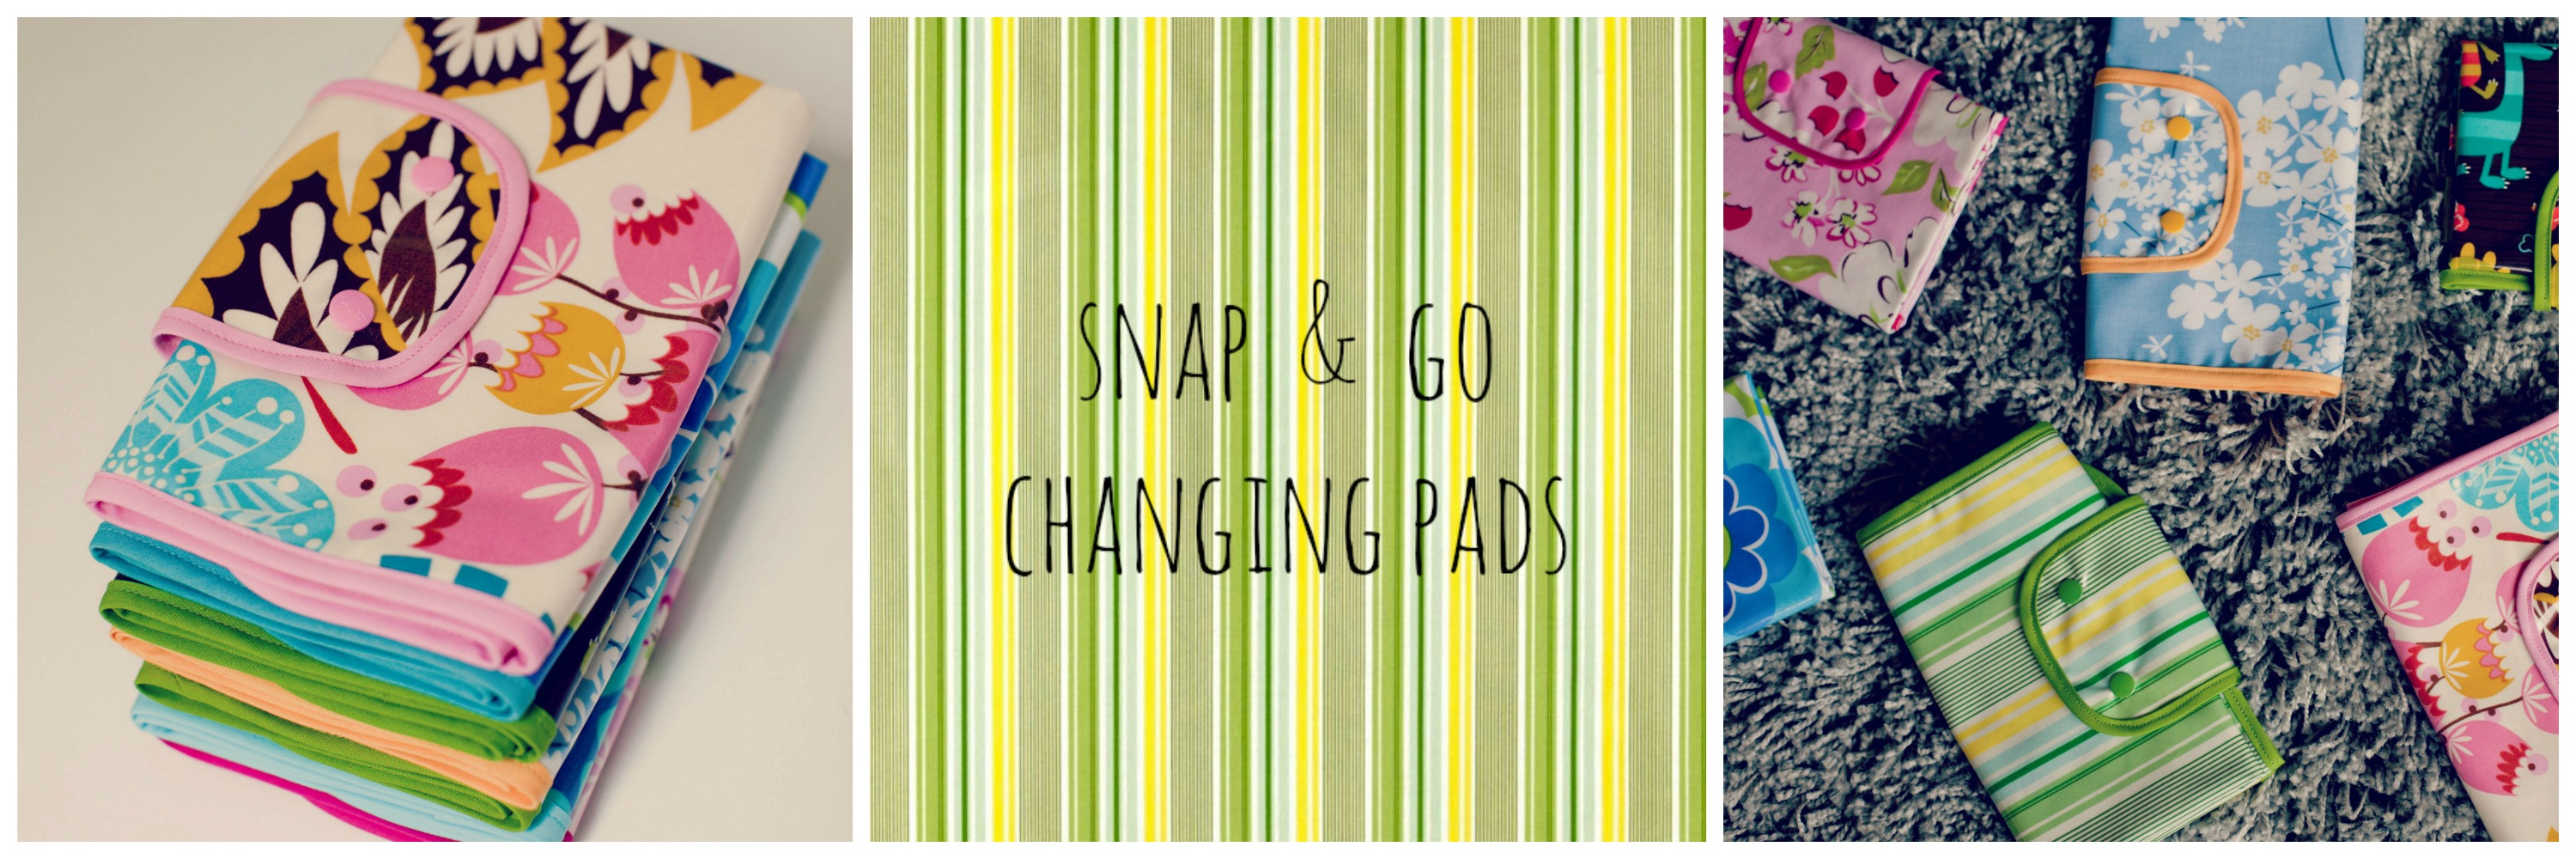 Waterproof laminated cotton and flannel snap and go changing pads